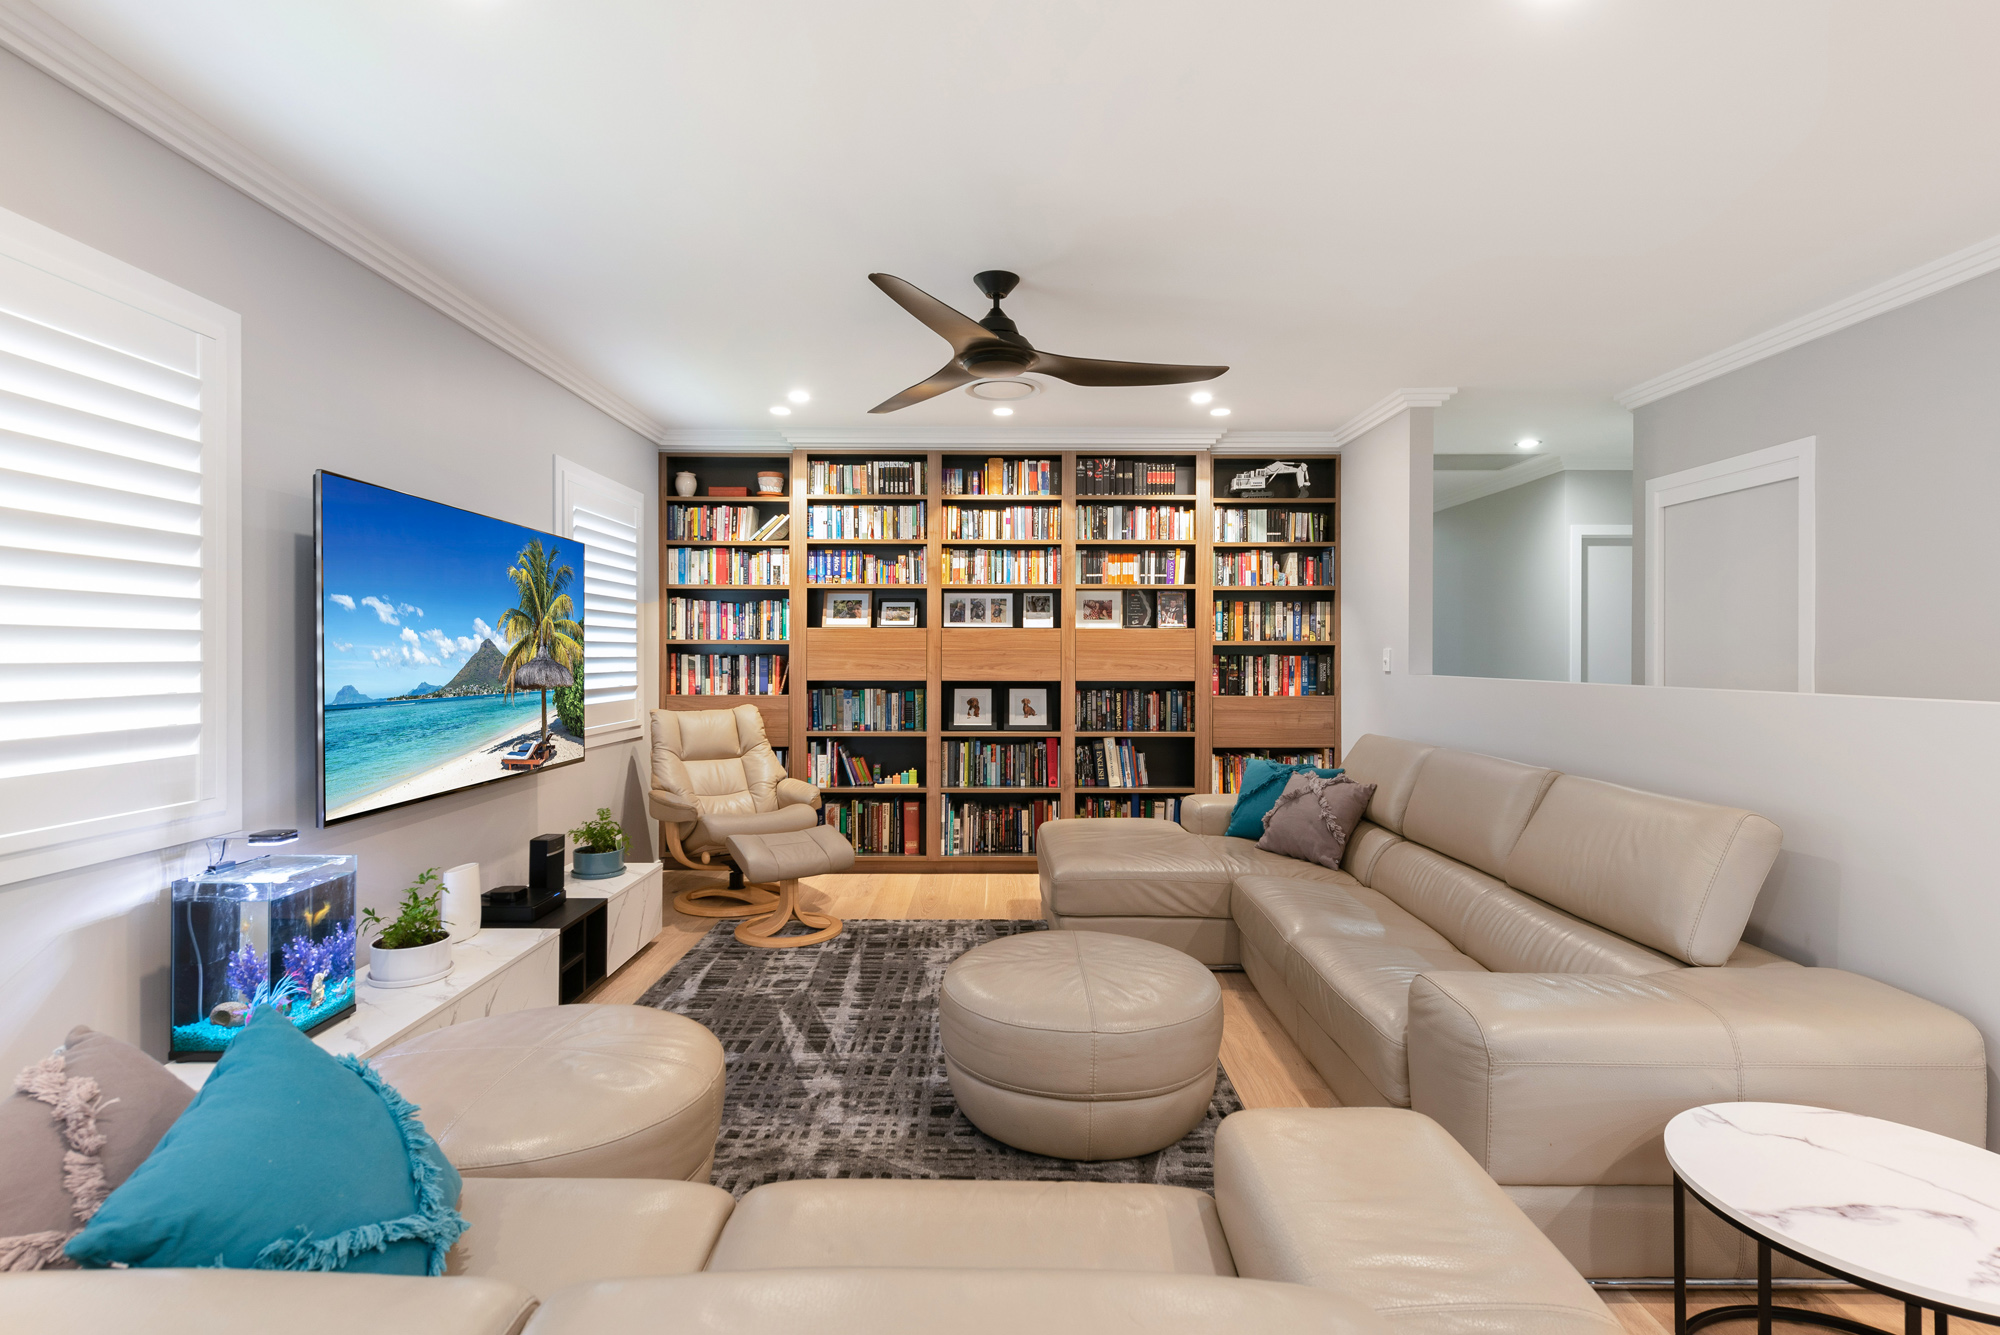 Living room with custom woodgrain built in bookcase, cream couch and wall mounted tv